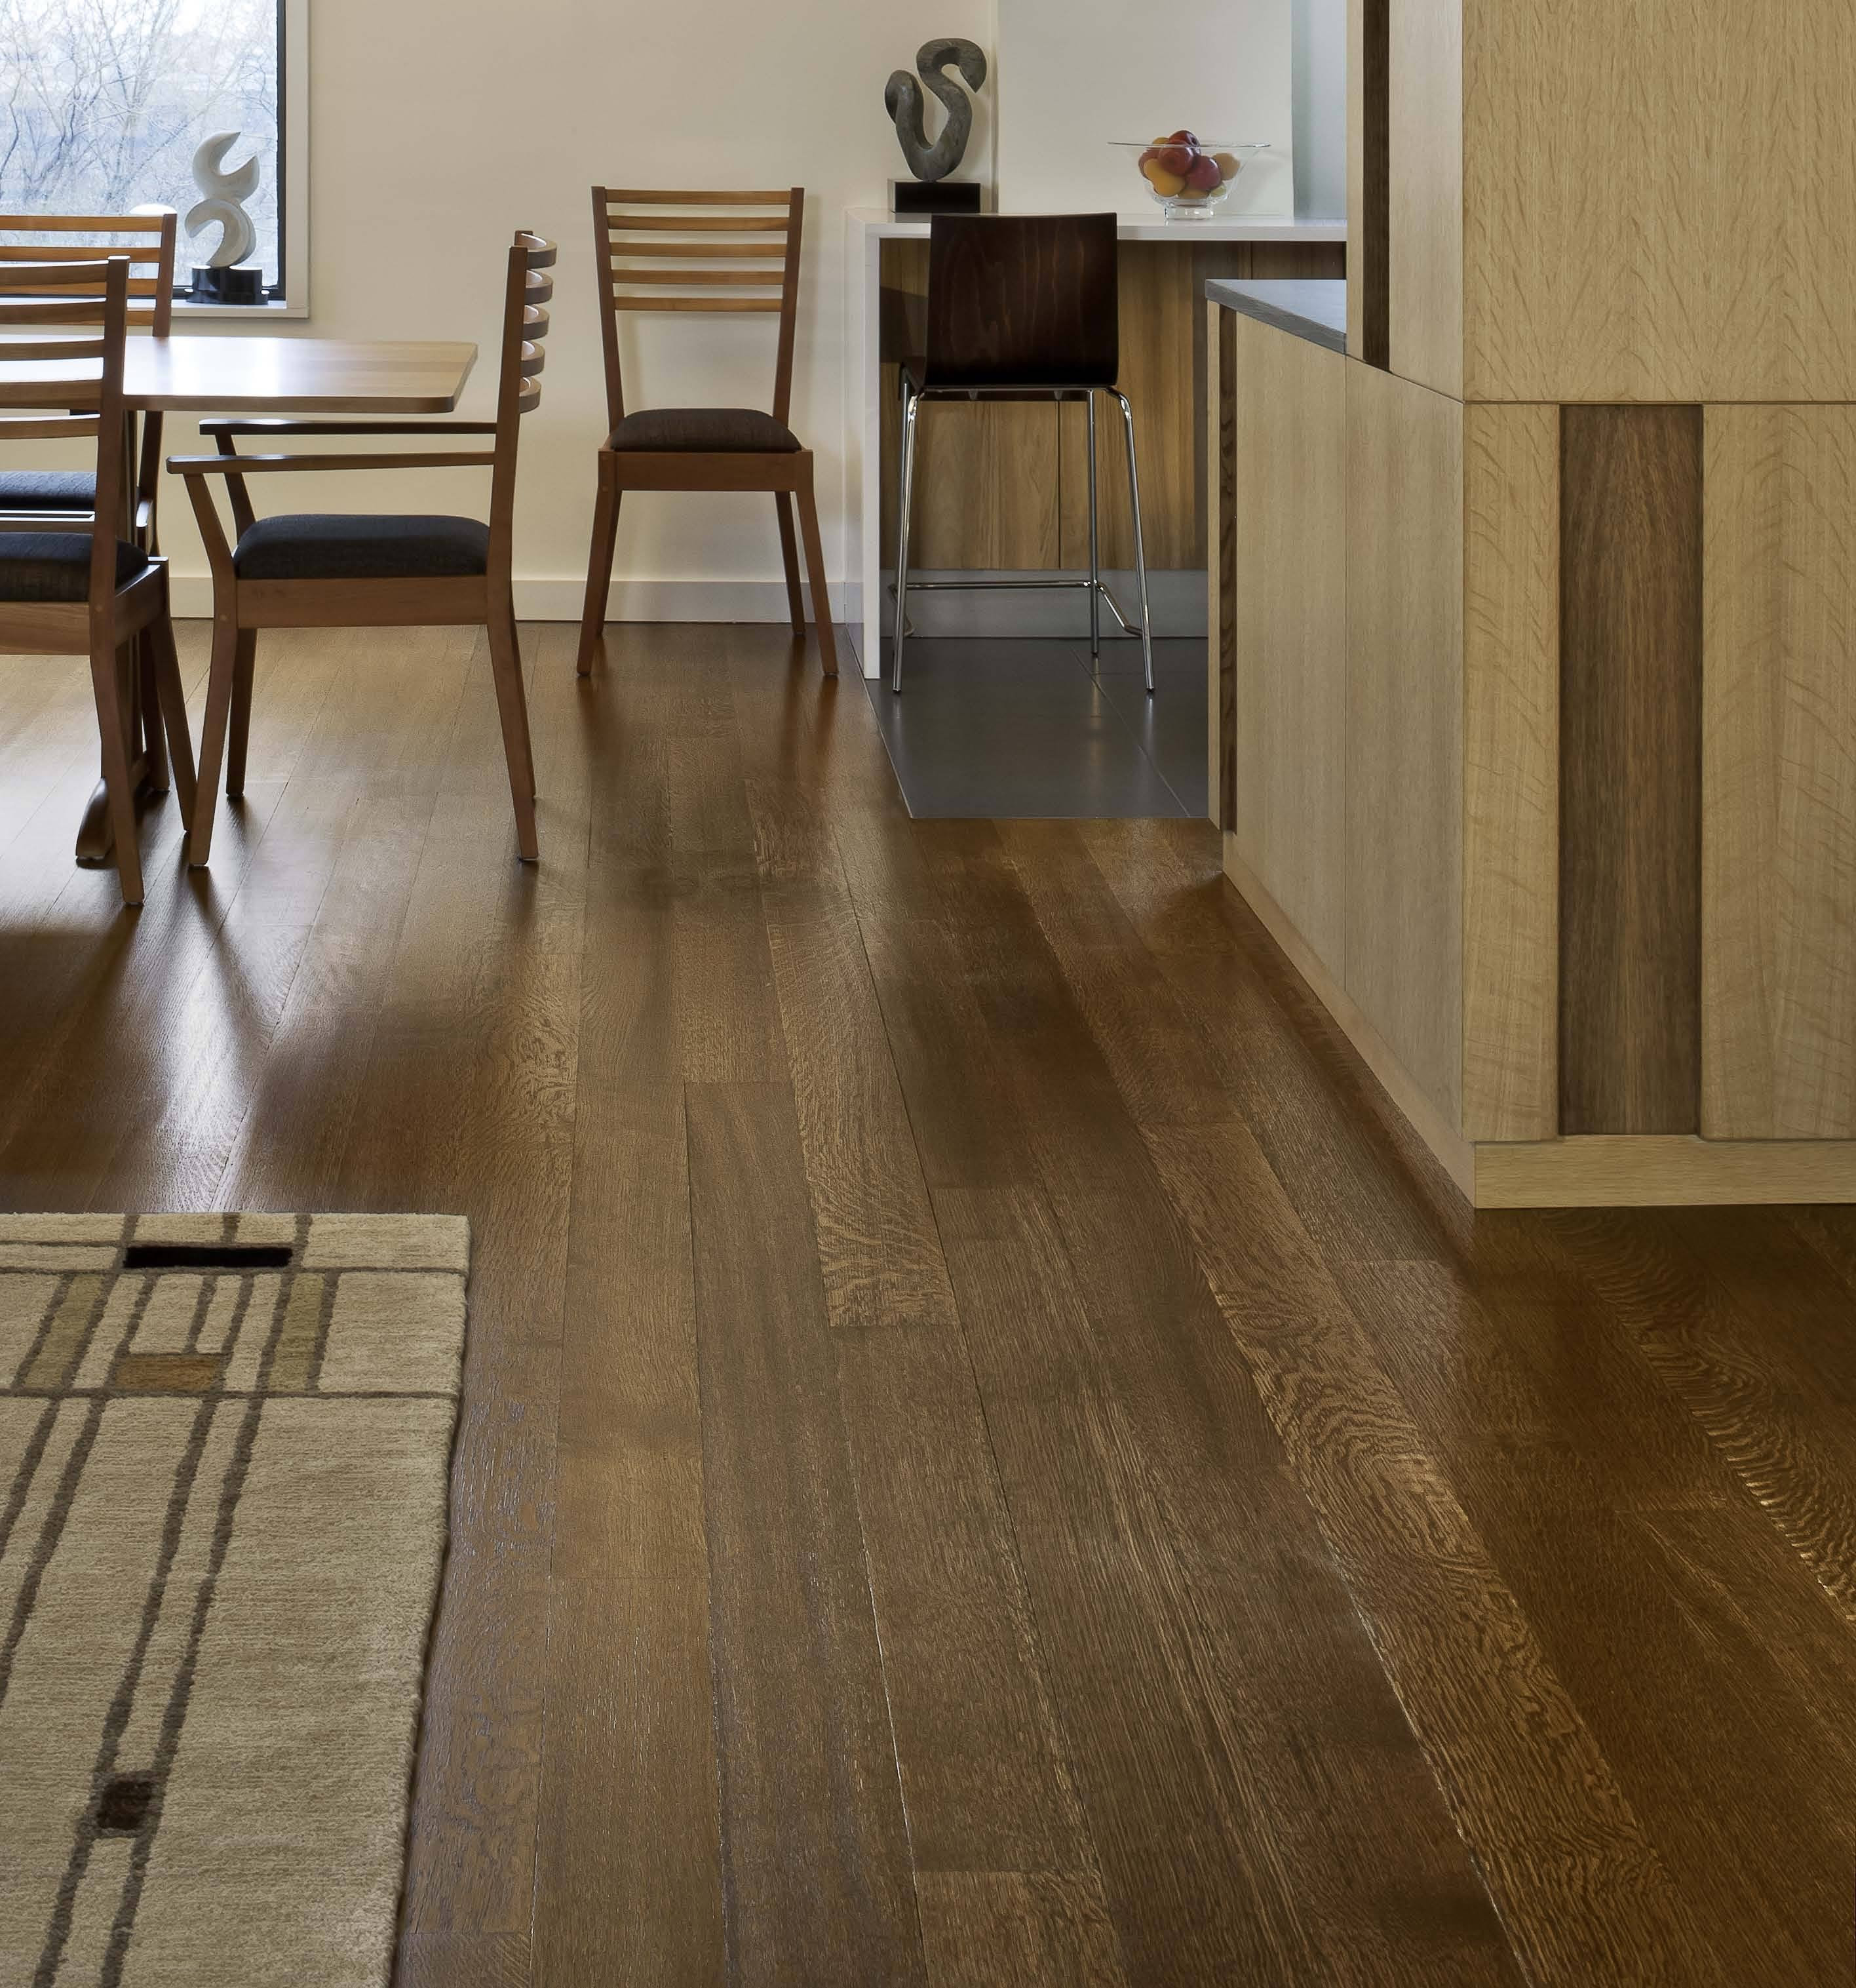 cost to sand and refinish hardwood floors of find the best cheap hardwood flooring near me trends best flooring for wood flooring panies near me stock hardwood flooring stores near me unique 11 best od floors